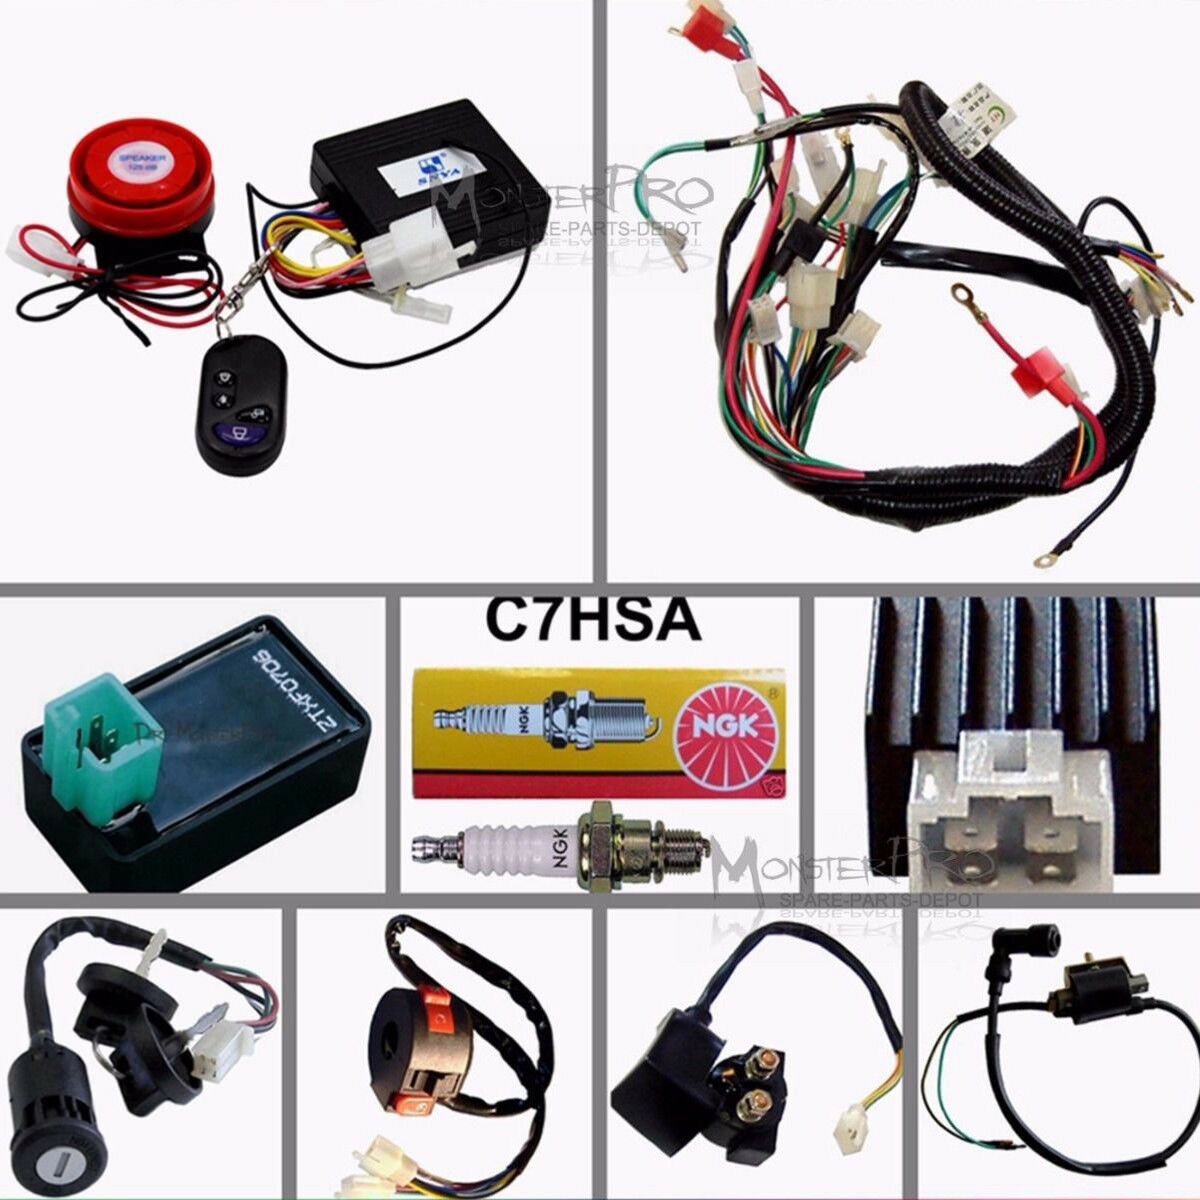 50 70 110 125cc Wiring Harness Loom Atv Quad Bike Electric Start 50cc For 1 Of 12 See More